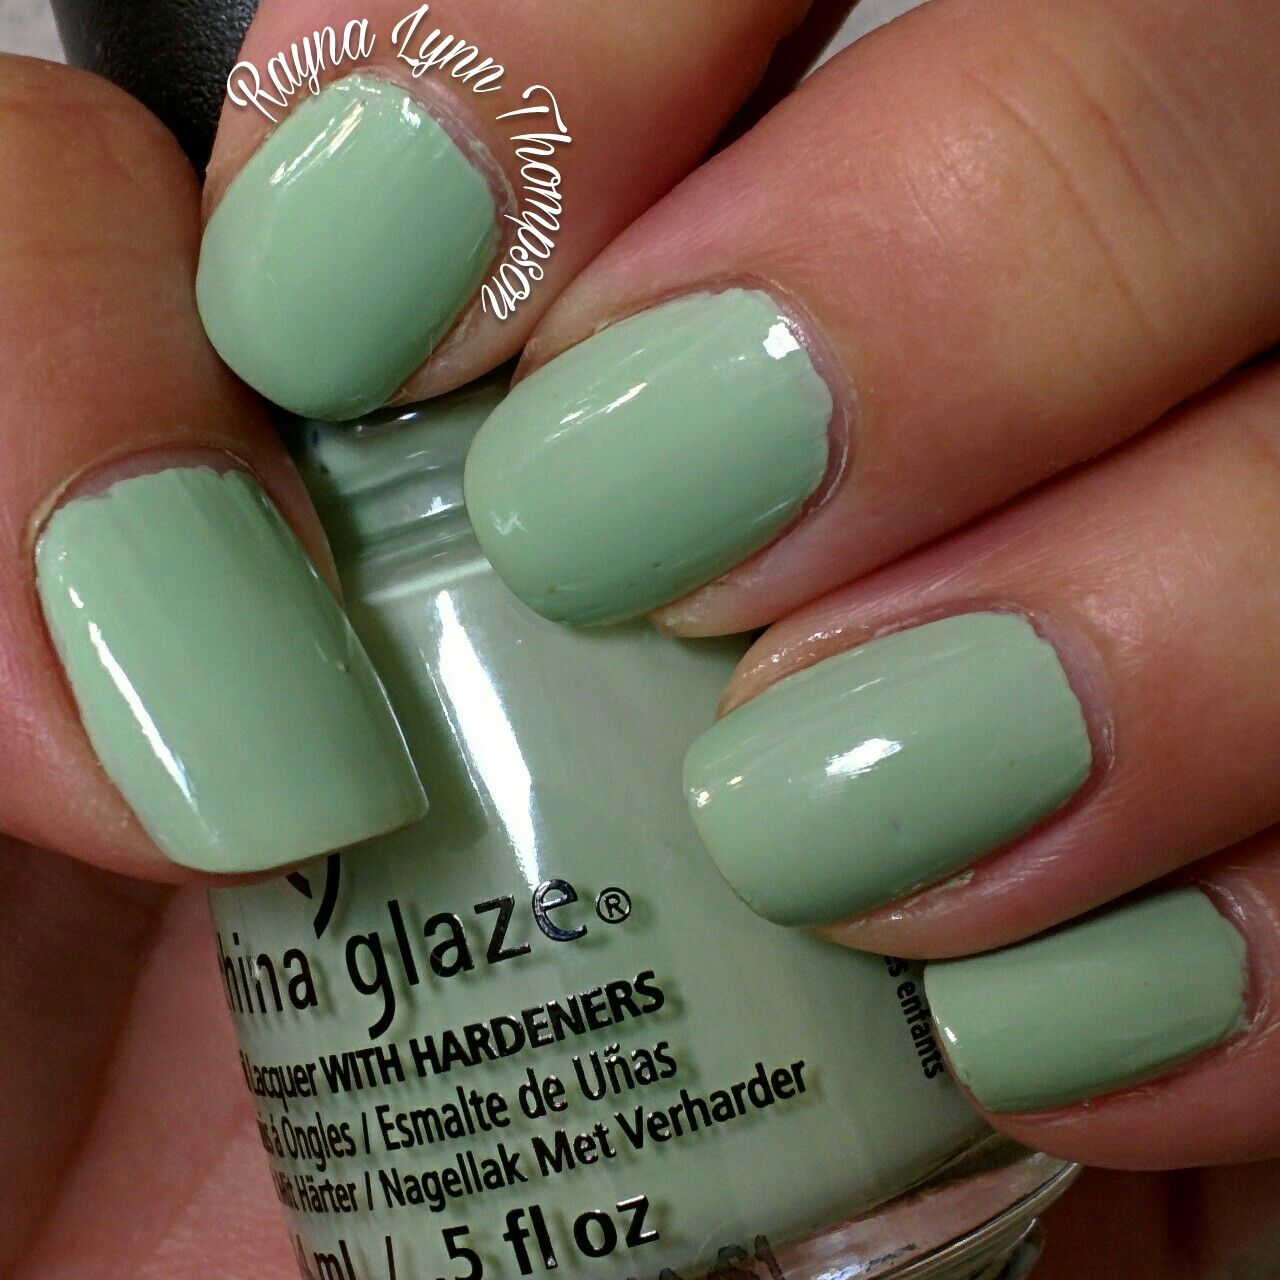 7 Tips For Ocean Chlorine Proofing Your Manicure Nail: China Glaze Spring Jungle For 2018 Pantone Nile Green IG